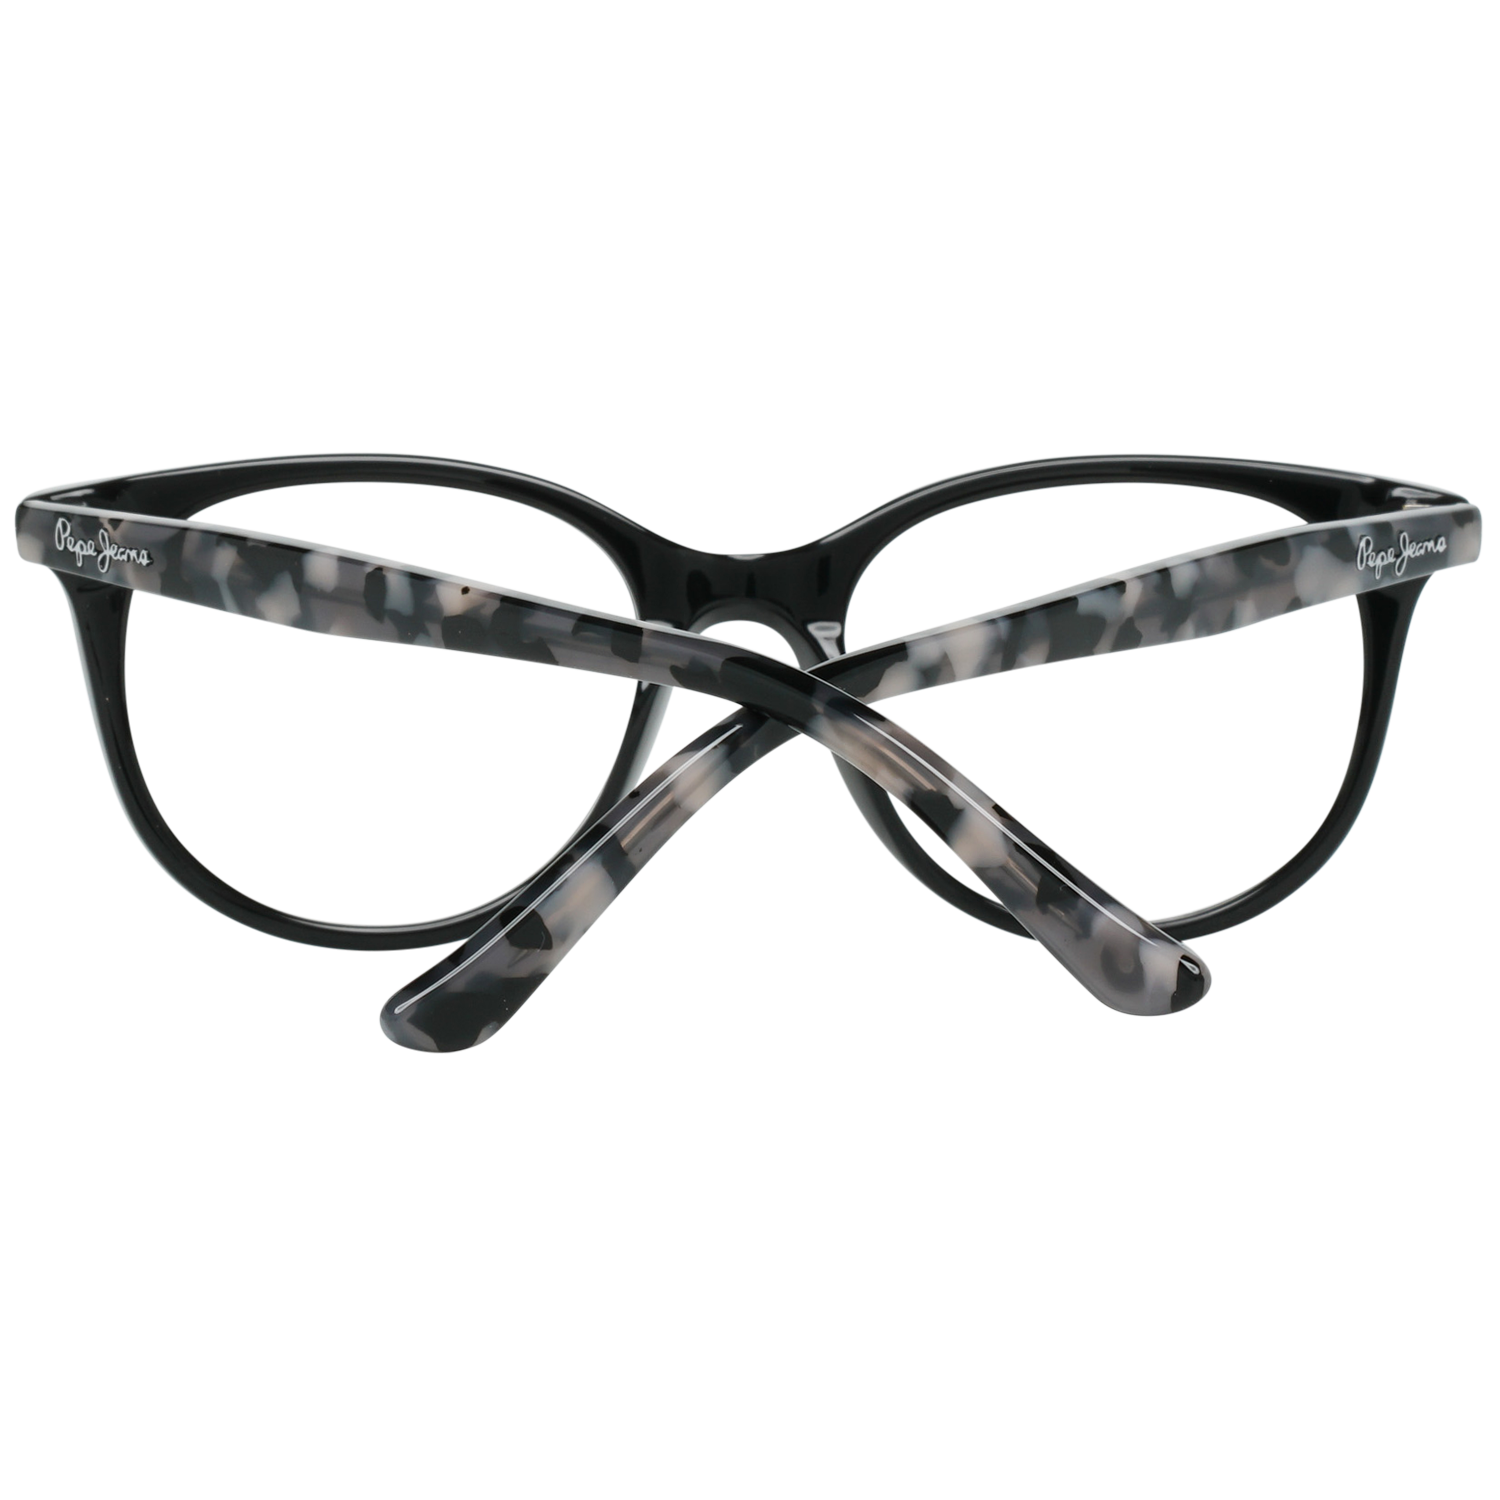 Pepe Jeans Optical Frame PJ3288 C1 48 Agnes Women Black